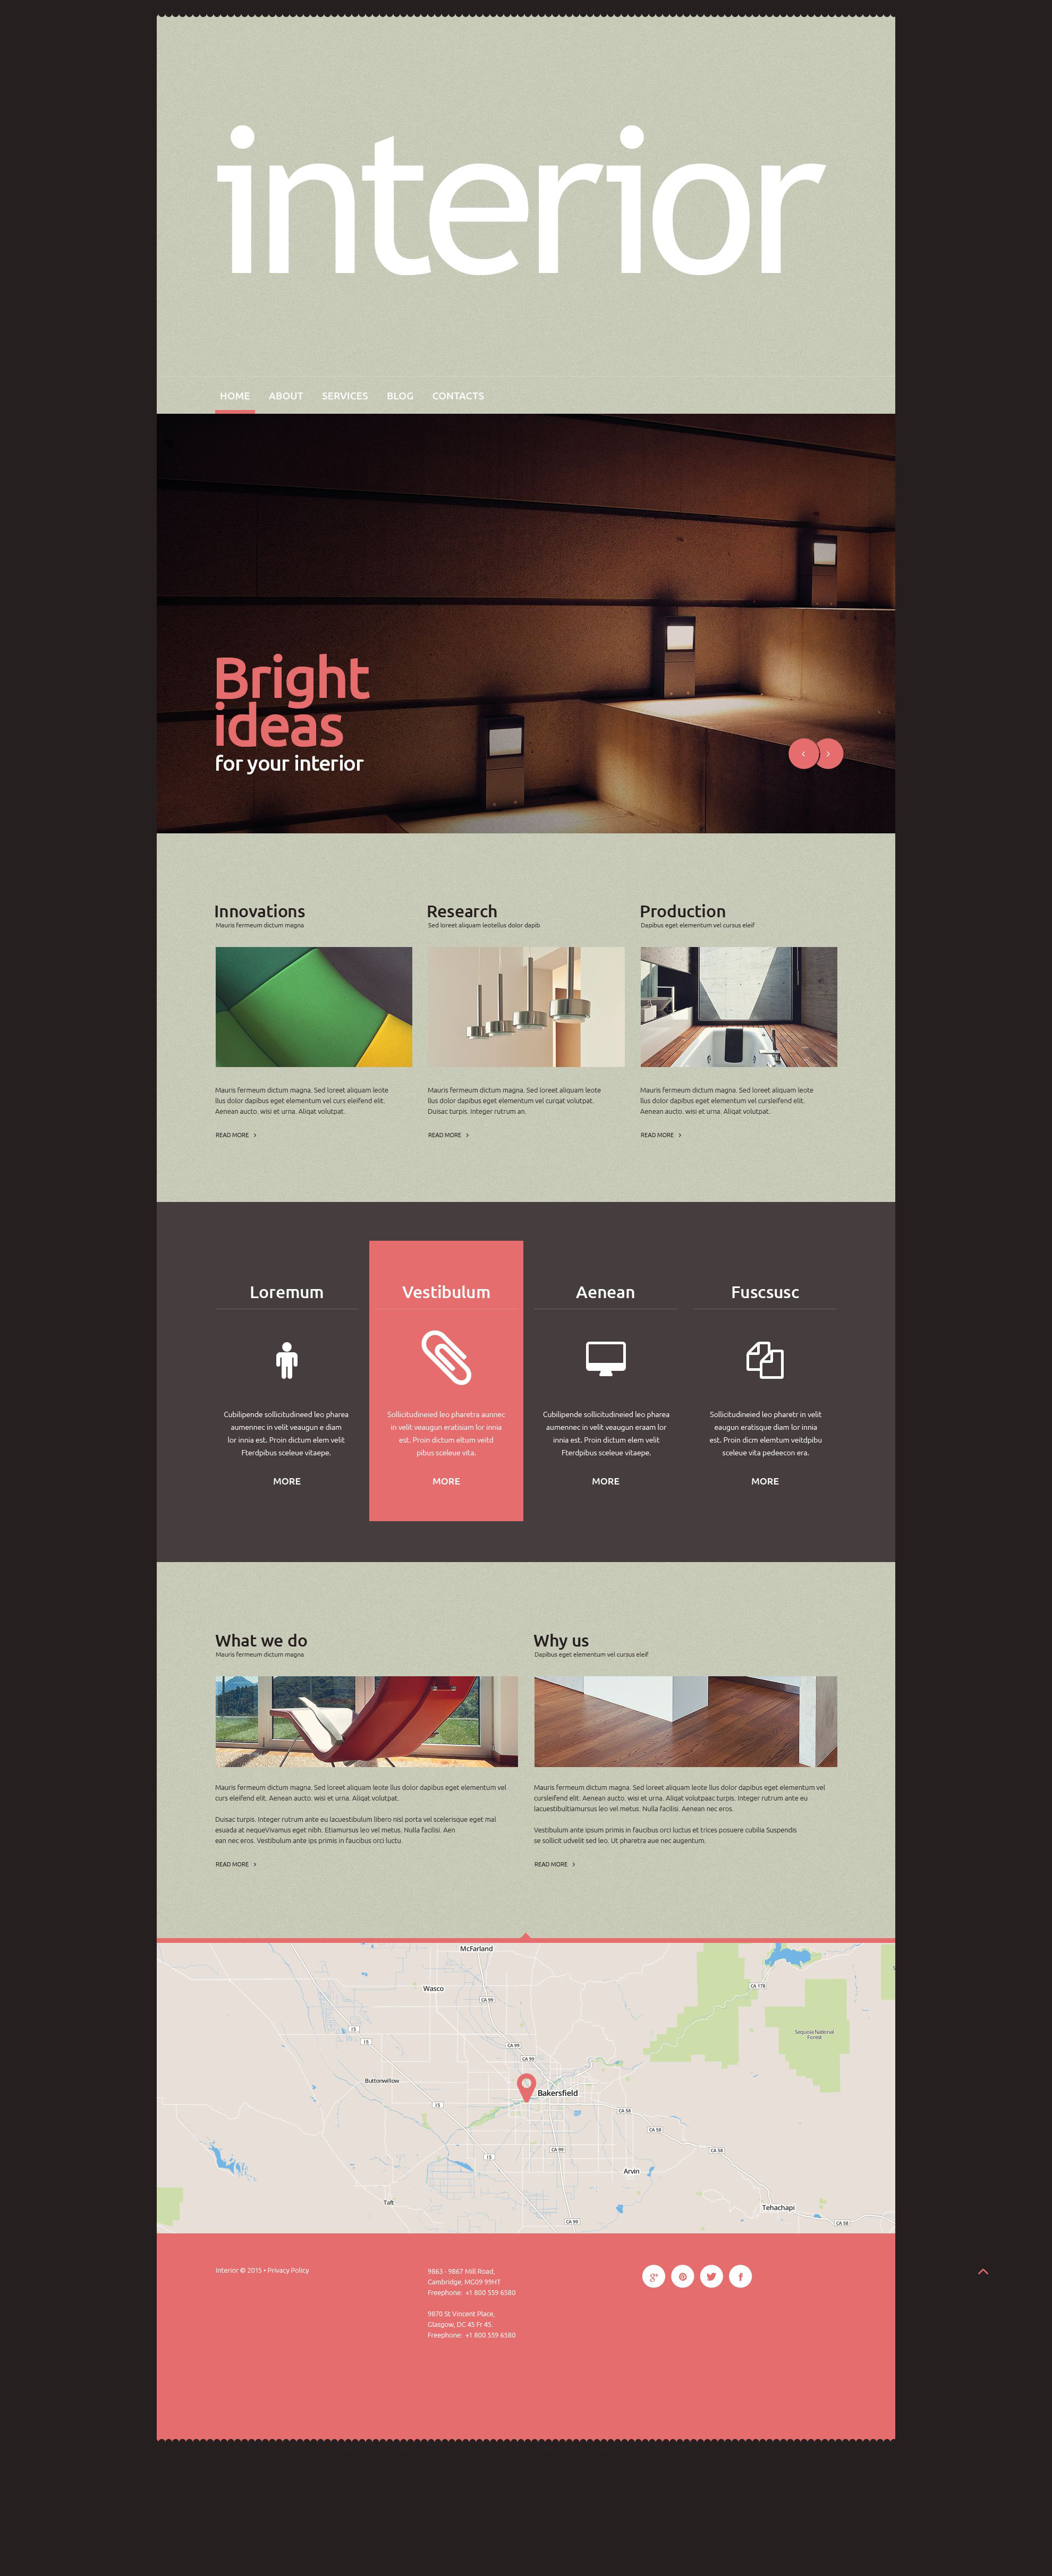 The Interior Furniture Studio Company Design WordPress Design 52948, one of the best WordPress themes of its kind (art & photography, most popular), also known as interior furniture studio company design WordPress template, home solution WordPress template, interior WordPress template, profile designer WordPress template, portfolio WordPress template, non-standard WordPress template, creative idea WordPress template, mirror WordPress template, clock WordPress template, cutlery WordPress template, lighting WordPress template, ceiling WordPress template, bathroom WordPress template, kitchen WordPress template, live WordPress template, table WordPress template, chair WordPress template, armchair WordPress template, sofa WordPress template, order WordPress template, client WordPress template, support WordPress template, service WordPress template, decoration WordPress template, style WordPress template, collection WordPress template, catalogue and related with interior furniture studio company design, home solution, interior, profile designer, portfolio, non-standard, creative idea, mirror, clock, cutlery, lighting, ceiling, bathroom, kitchen, live, table, chair, armchair, sofa, order, client, support, service, decoration, style, collection, catalogue, etc.